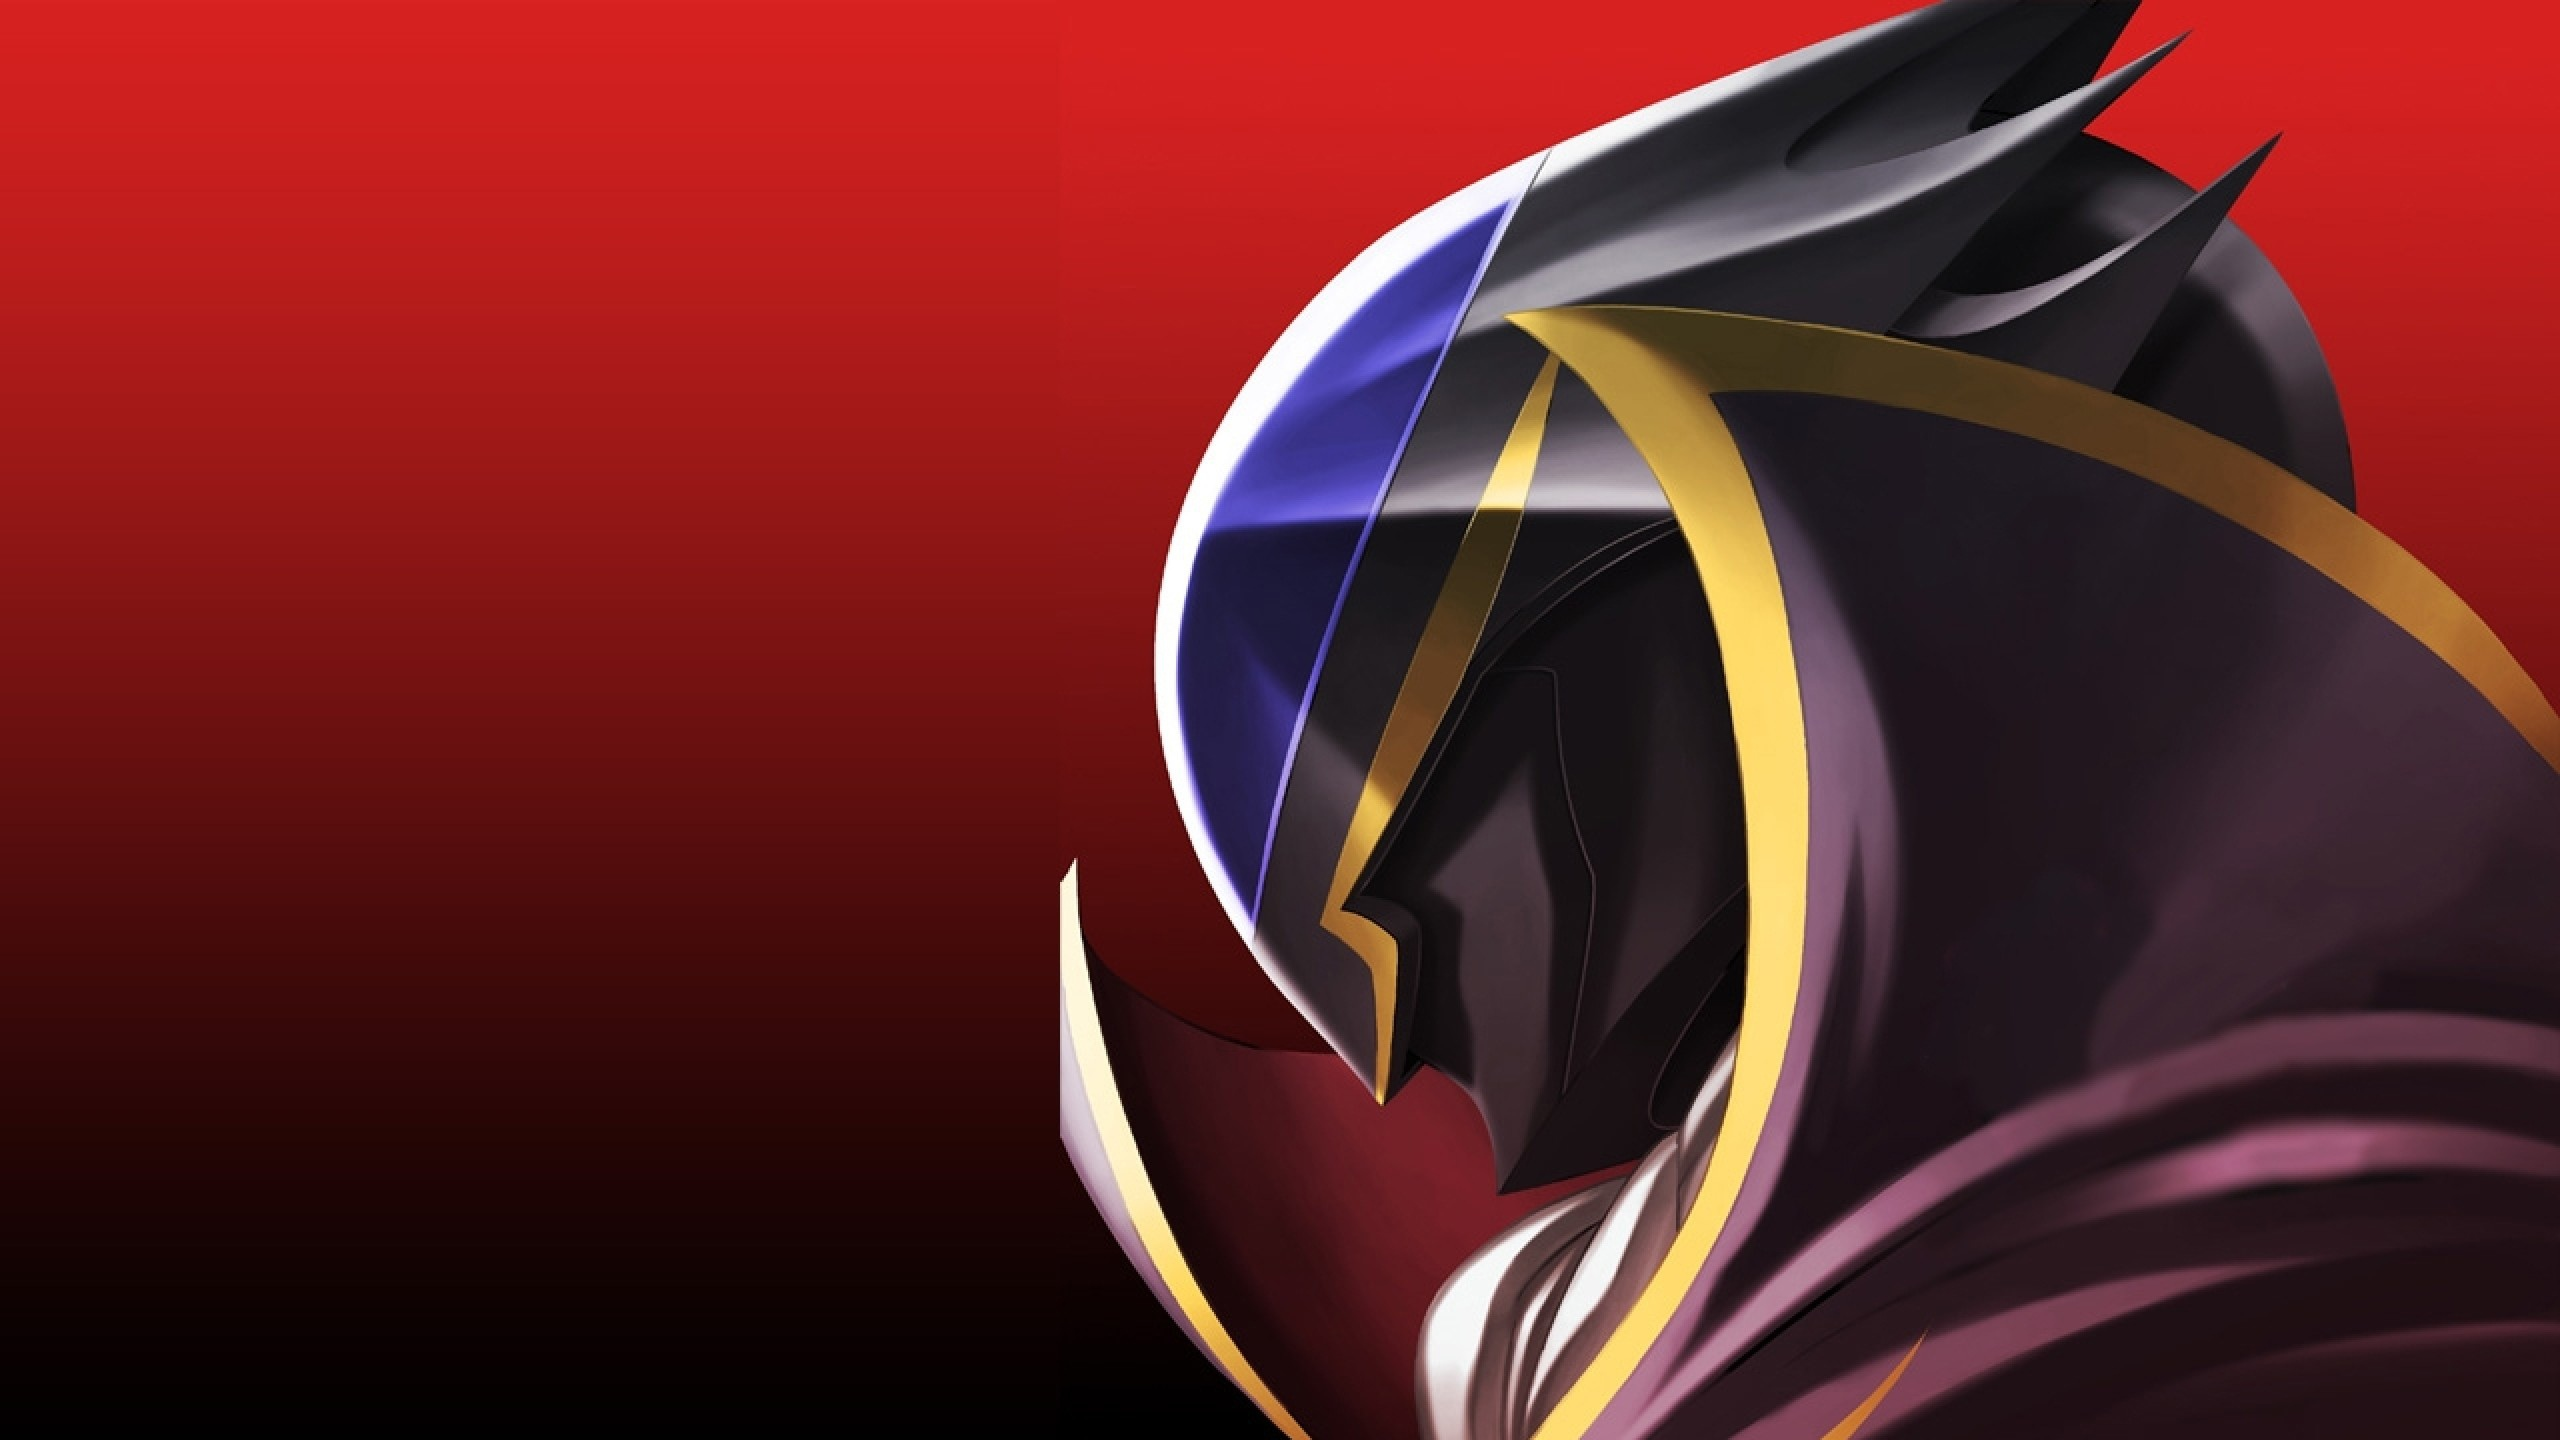 Download Wallpaper From Anime Code Geass With Tags Cool